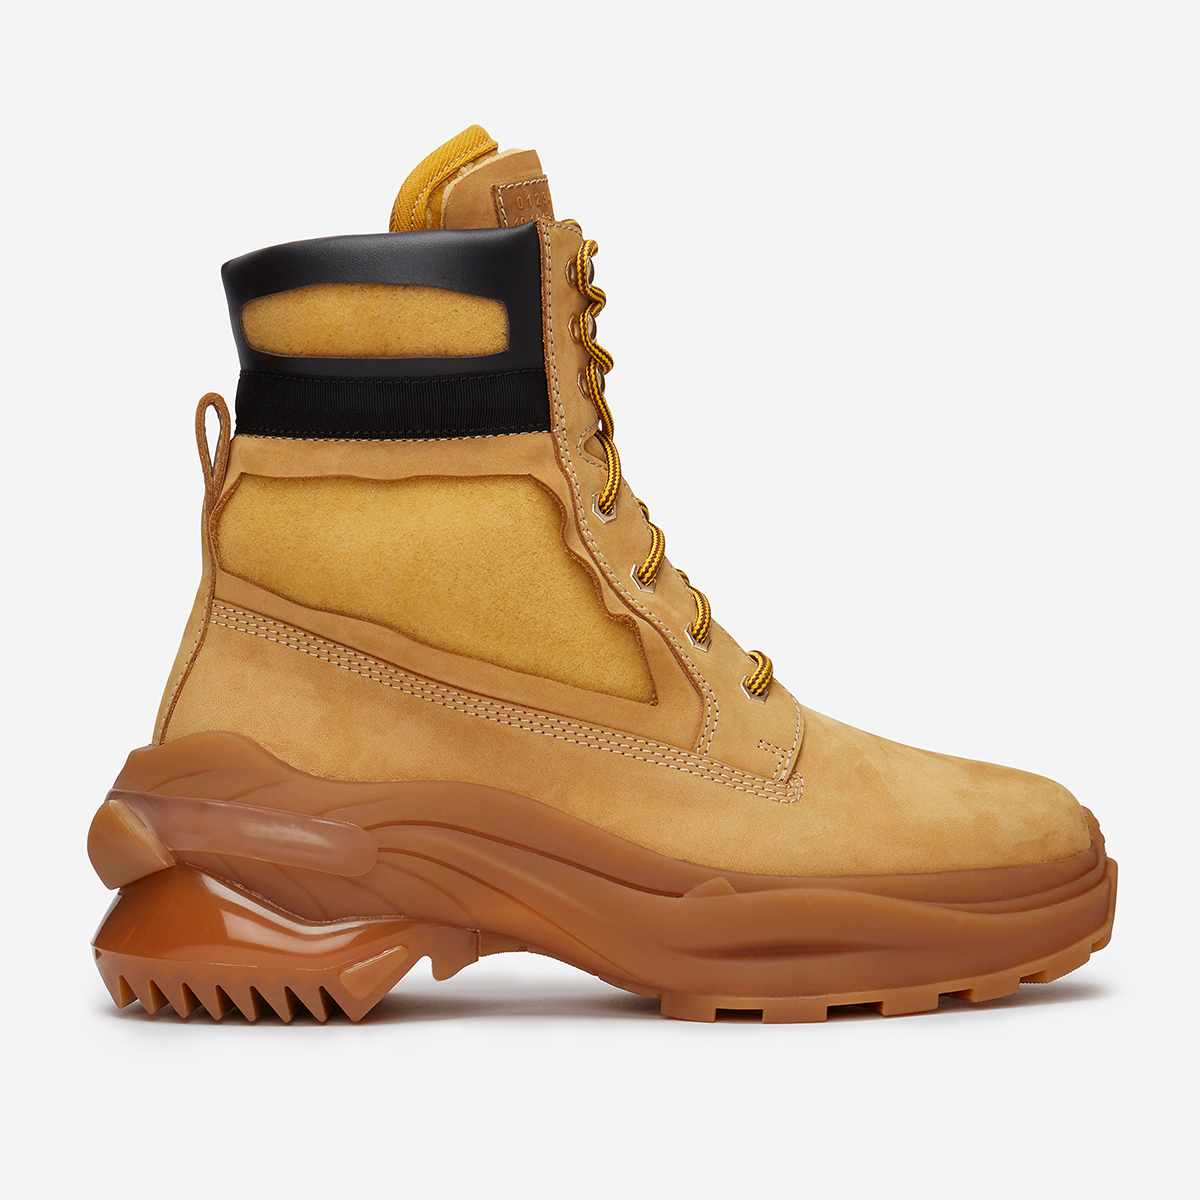 Maison Margiela mens shoes in mustard yellow